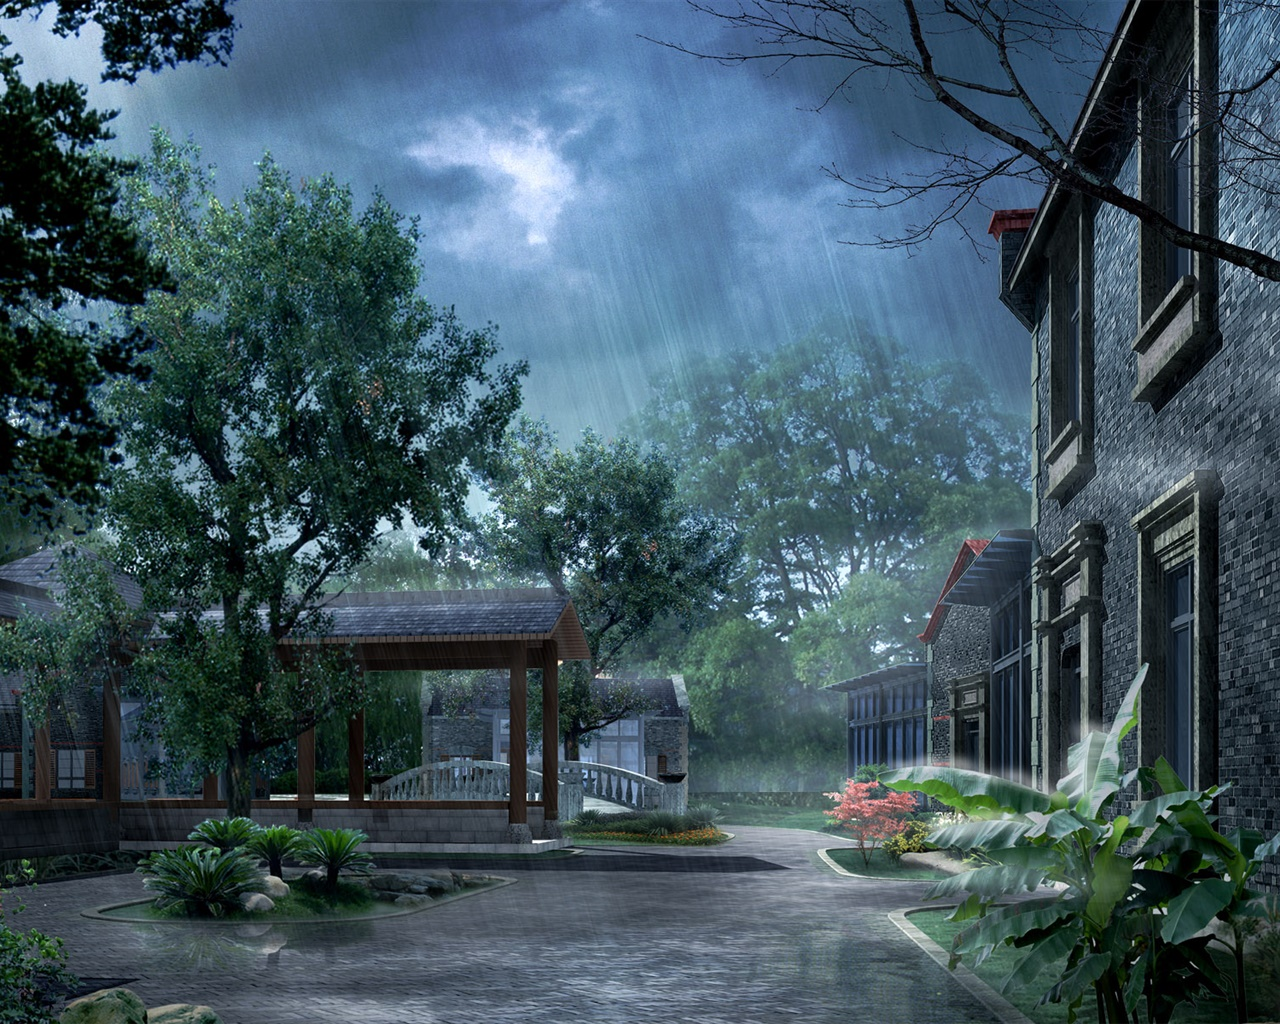 Park in the rain, house, trees, 3D render pictures 1280x1024 wallpaper